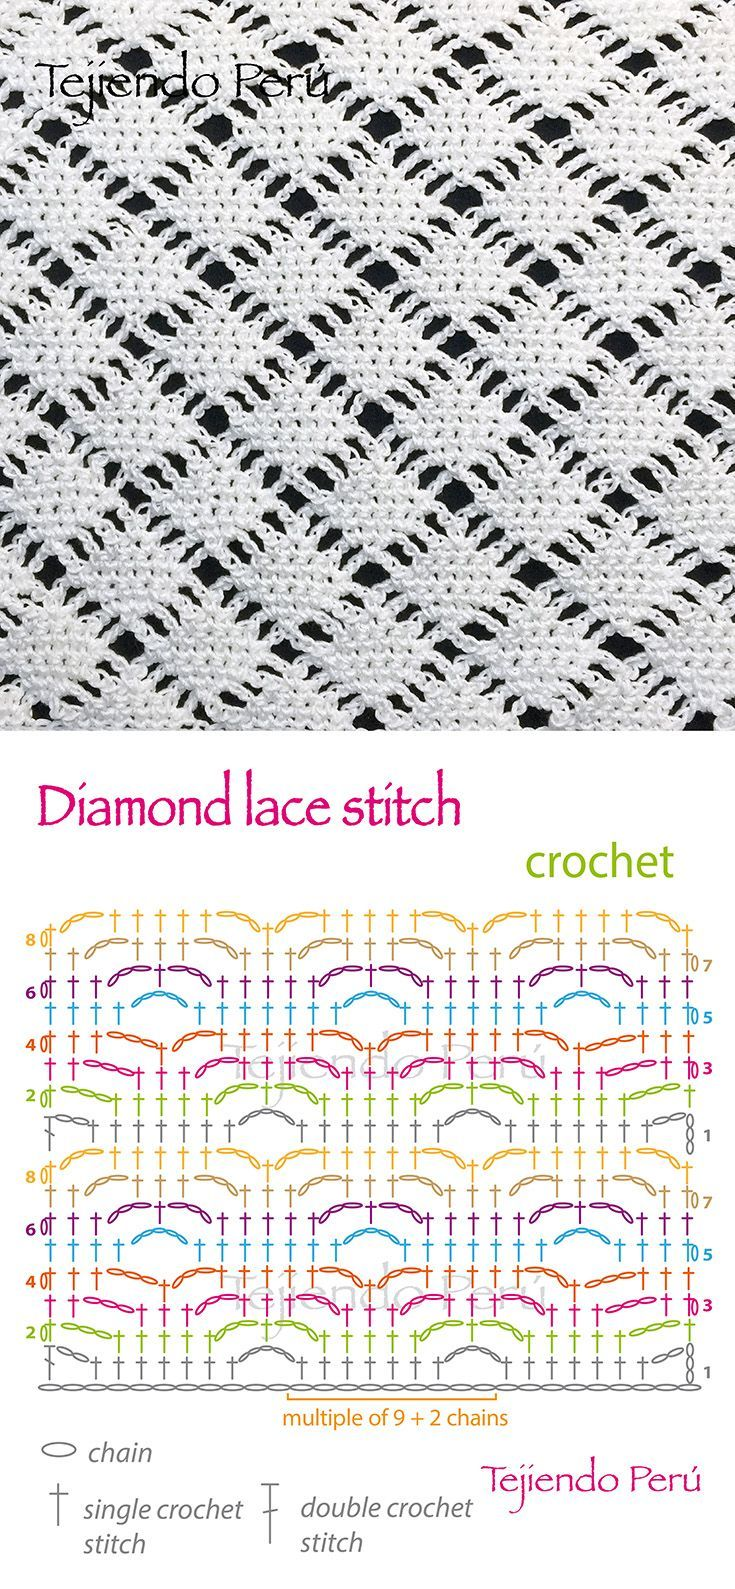 crochet diamond lace stitch diagram crochet puntos y tejidos rh pinterest co uk crochet stitch diagram symbols crochet stitches diagram free